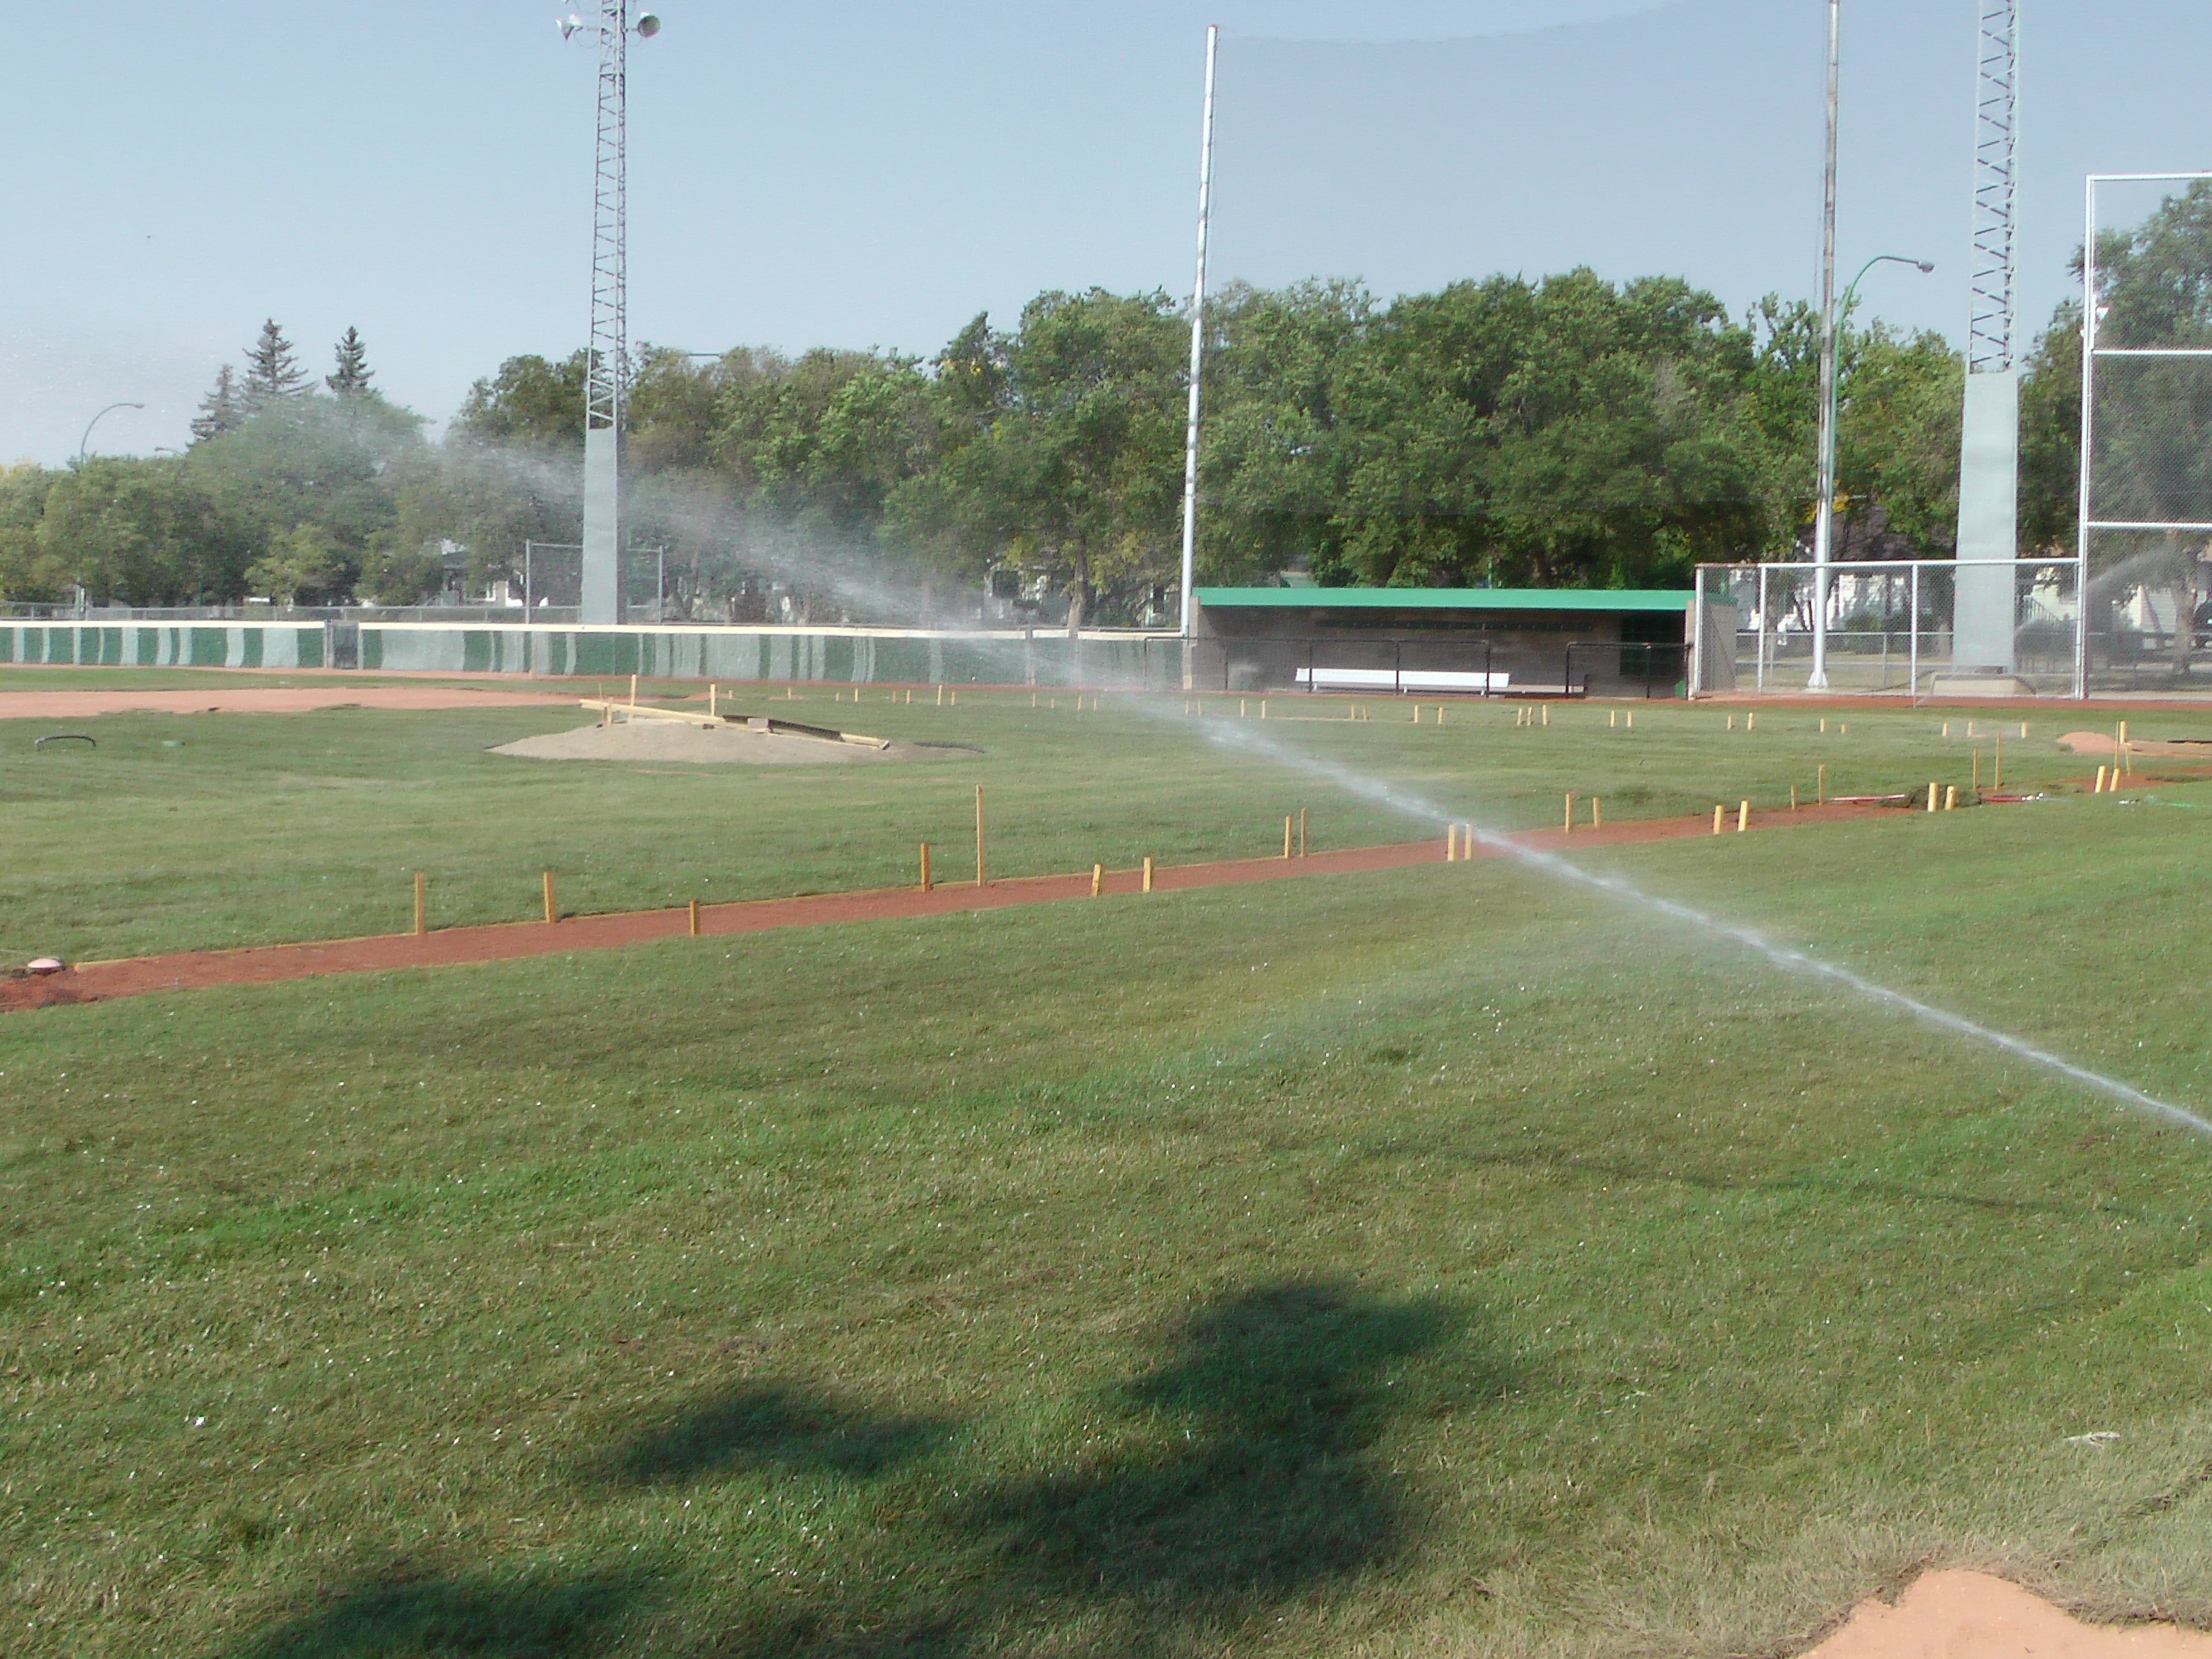 Sept 7 & 8 2018, Optimist Park Field Renovations, sod down being watered - Image 5